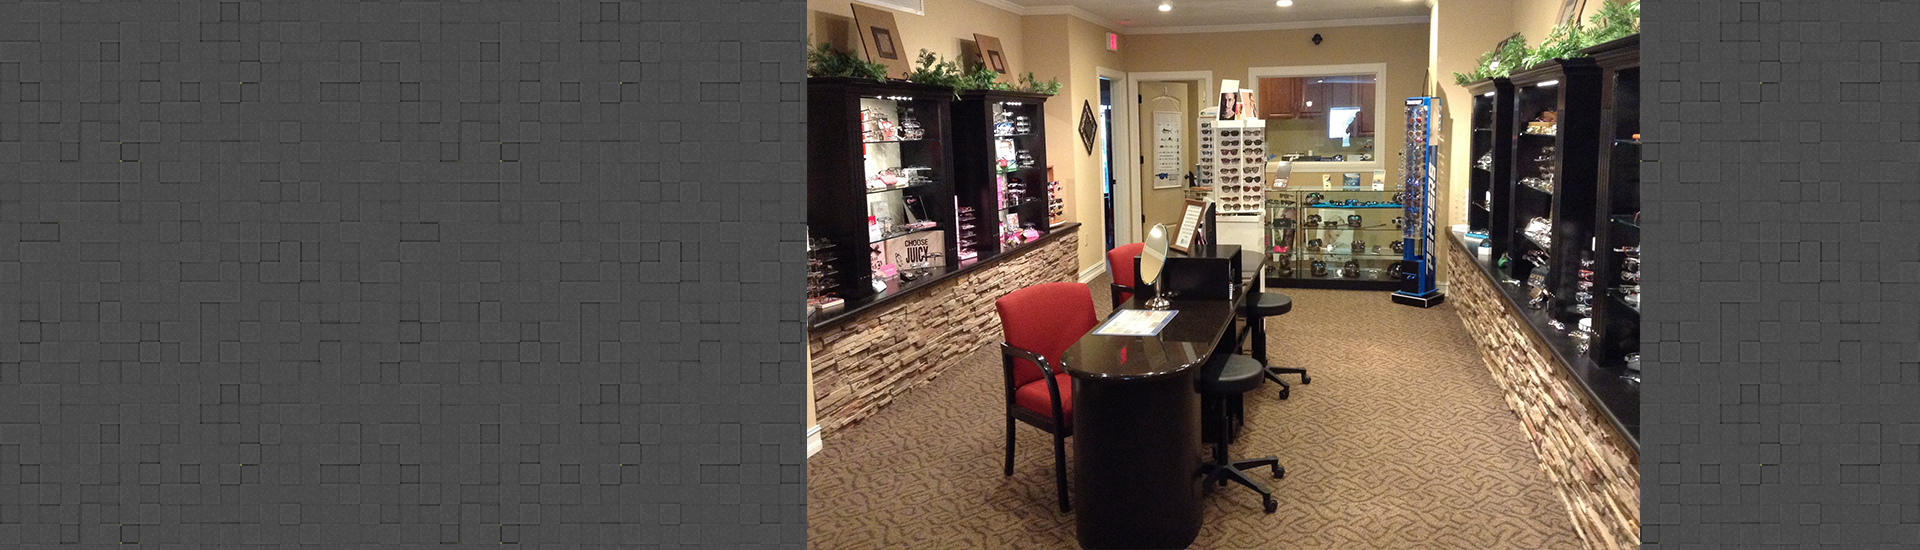 optical-store-huntersville-nc-eyecare-eyeglasses-lenses-contacts-designer-sunglasses